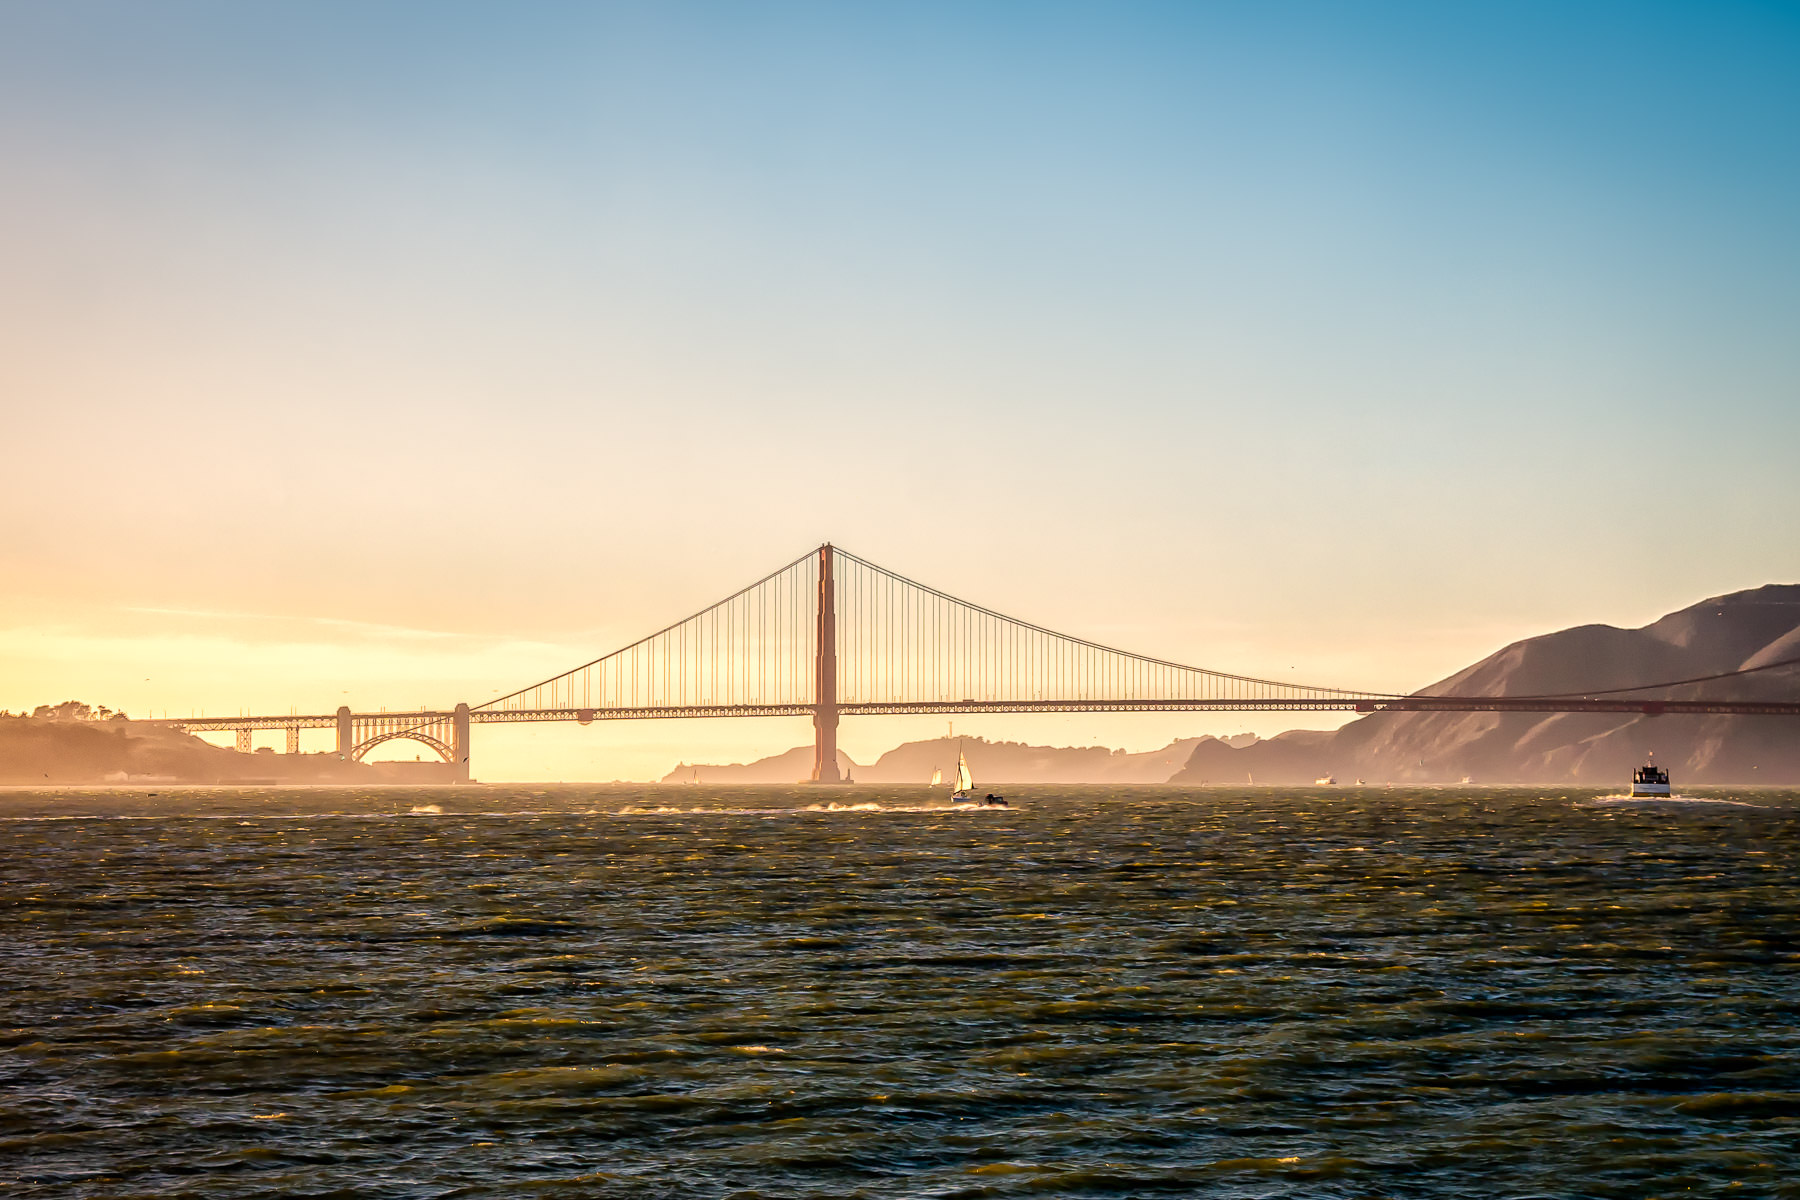 The early evening sun lights the south tower of San Francisco's iconic Golden Gate Bridge.